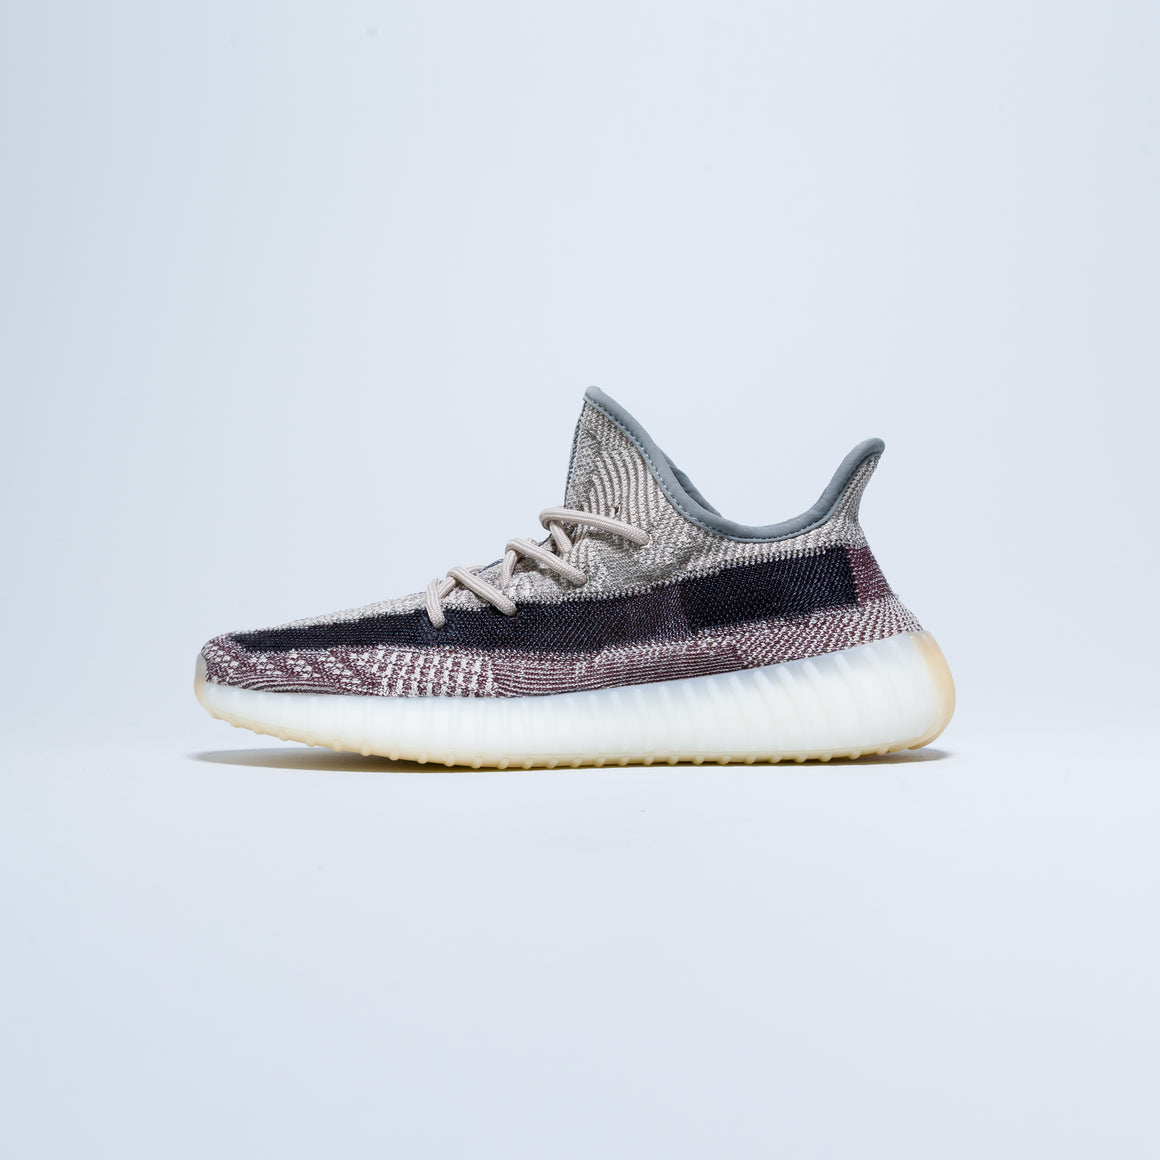 Yeezy Boost 350v2 - Zyon - Up There